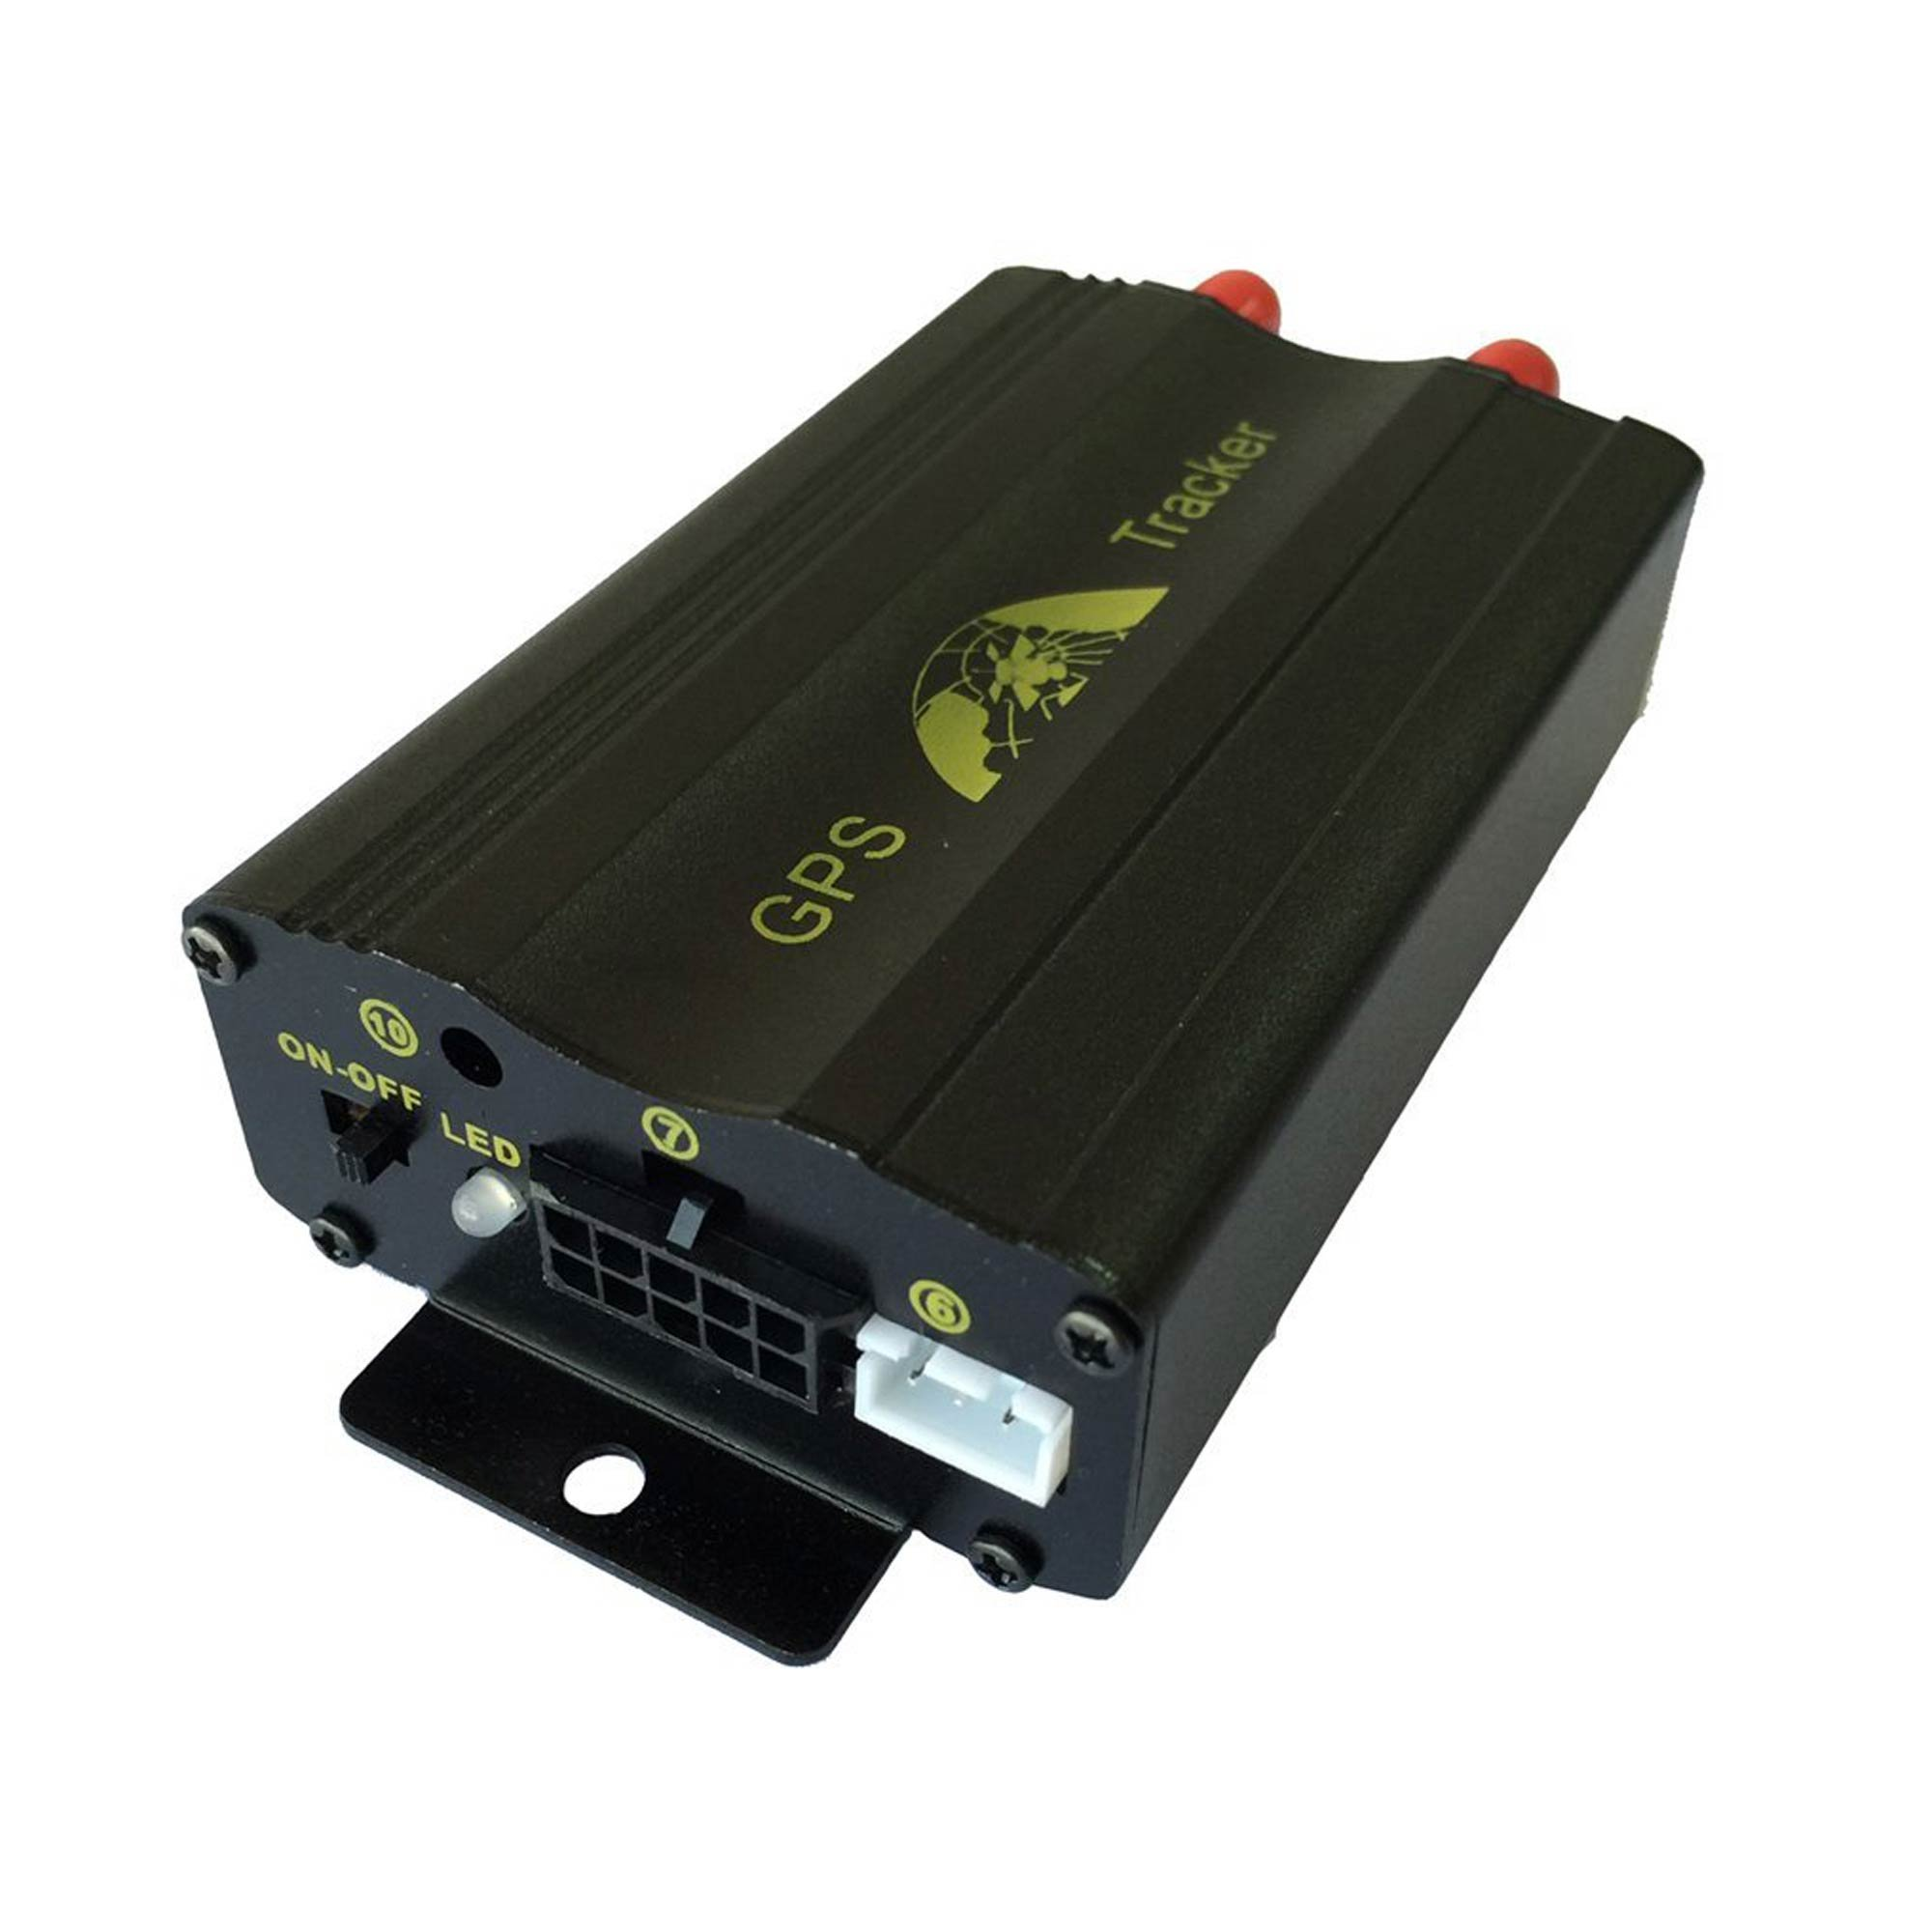 Coban GPS GPRS SMS Real-time Tracker TK103A Quad Band SD Card Slot Anti-Theft Move Alarm by SMS